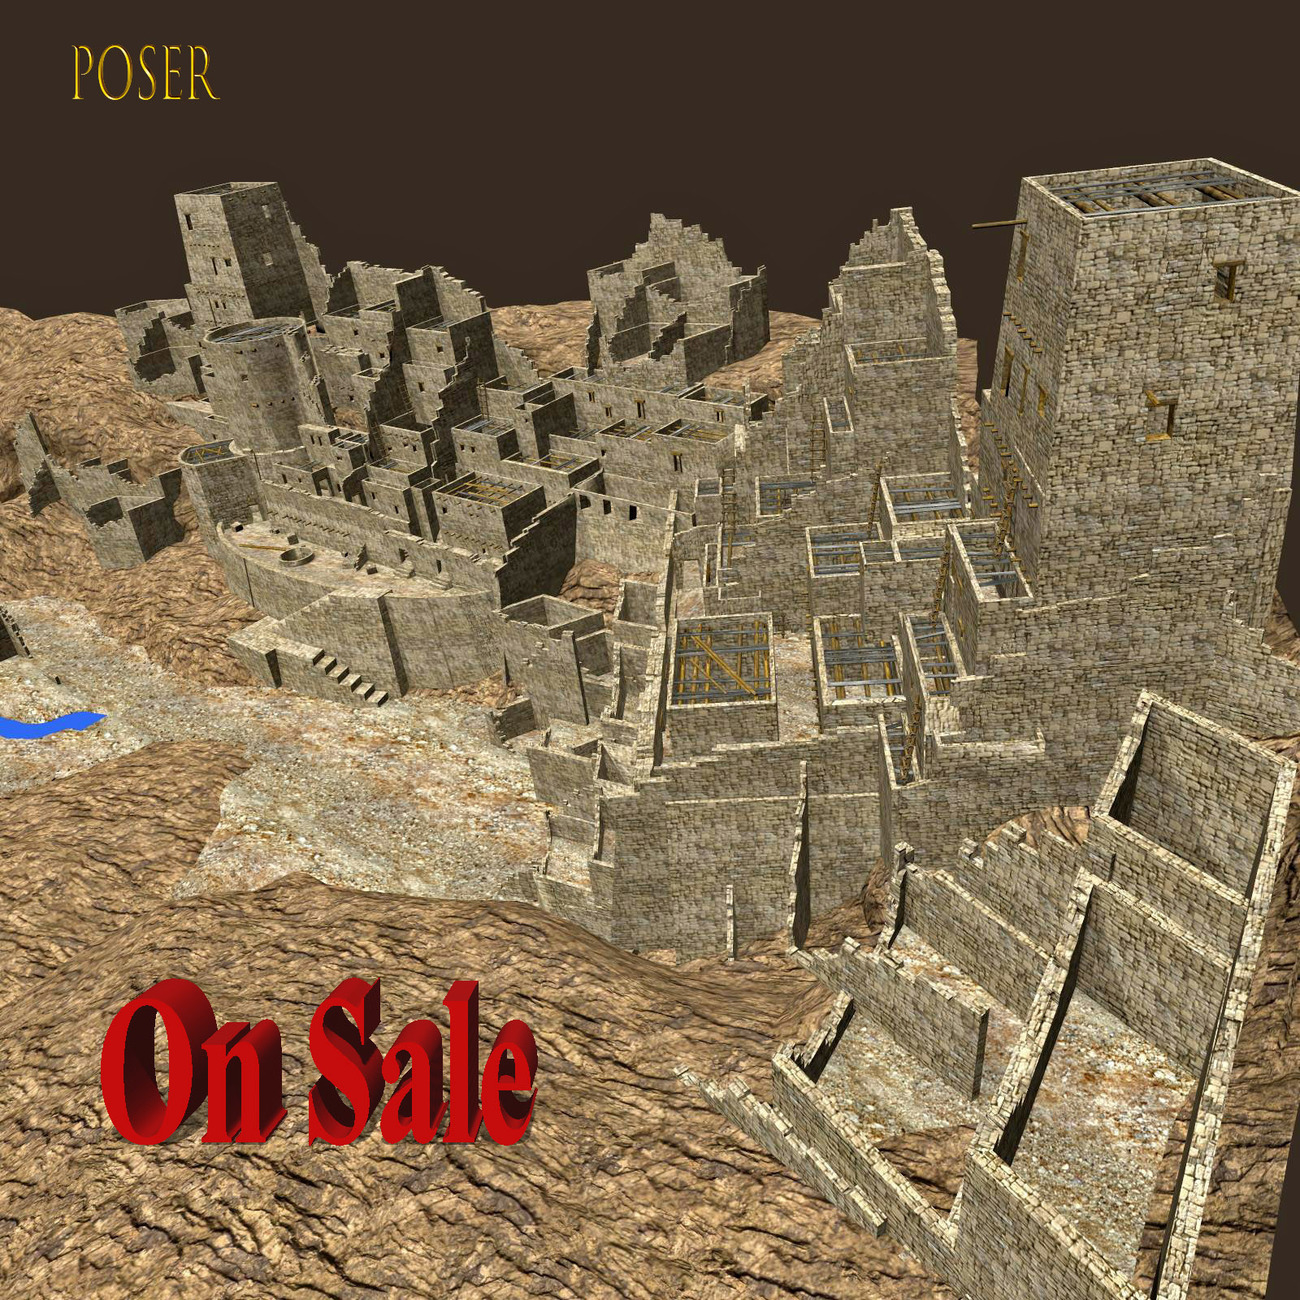 Lost City on Sale by London224